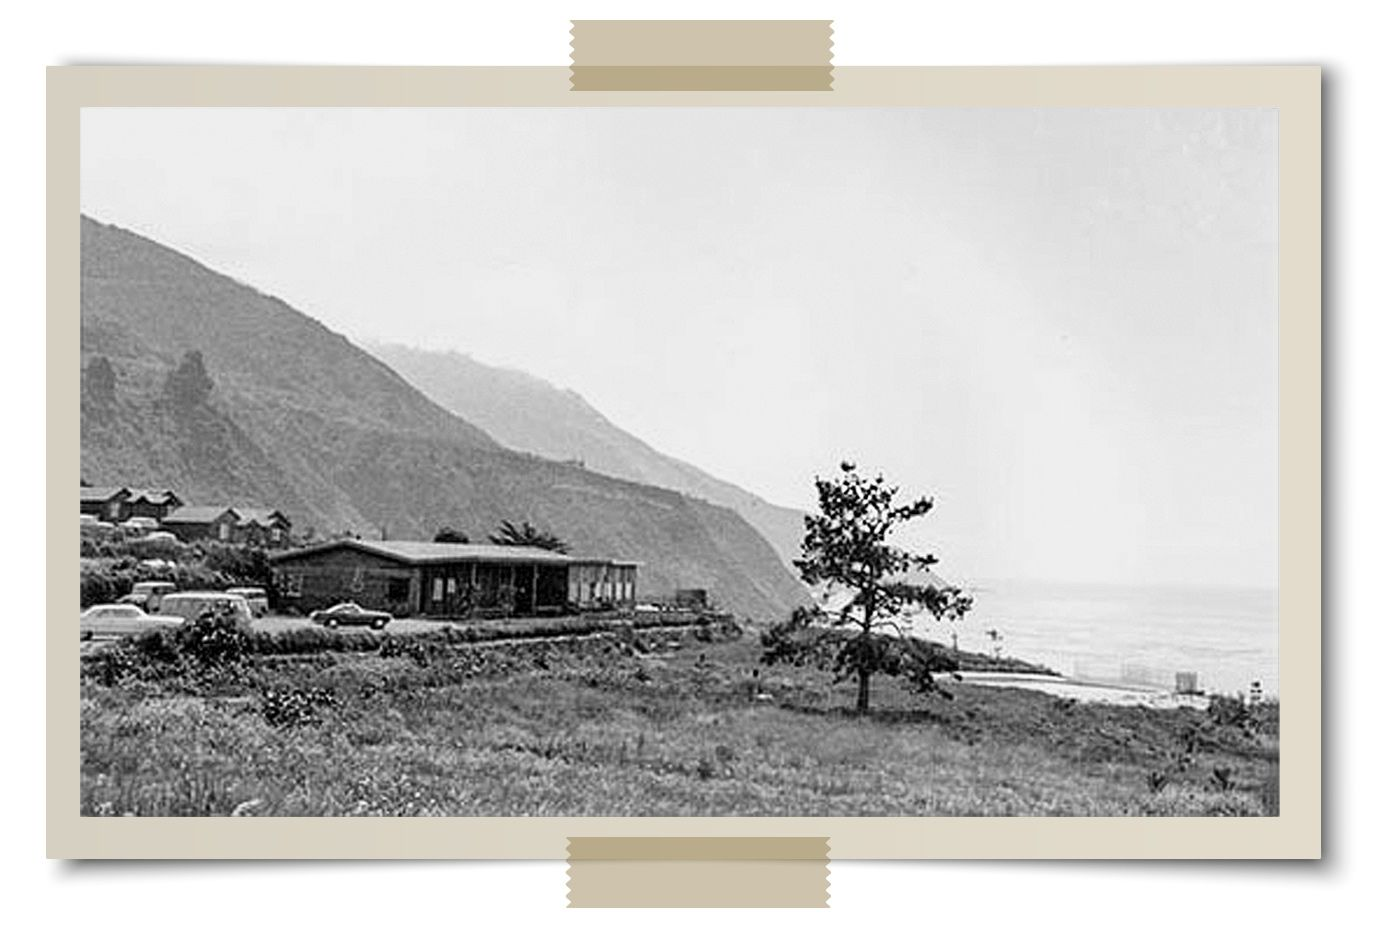 The lodge at Slates Hot Springs in Big Sur in the early 1960s. Thompson's abortive stint as caretaker there led to the founding of the Esalen Institute.